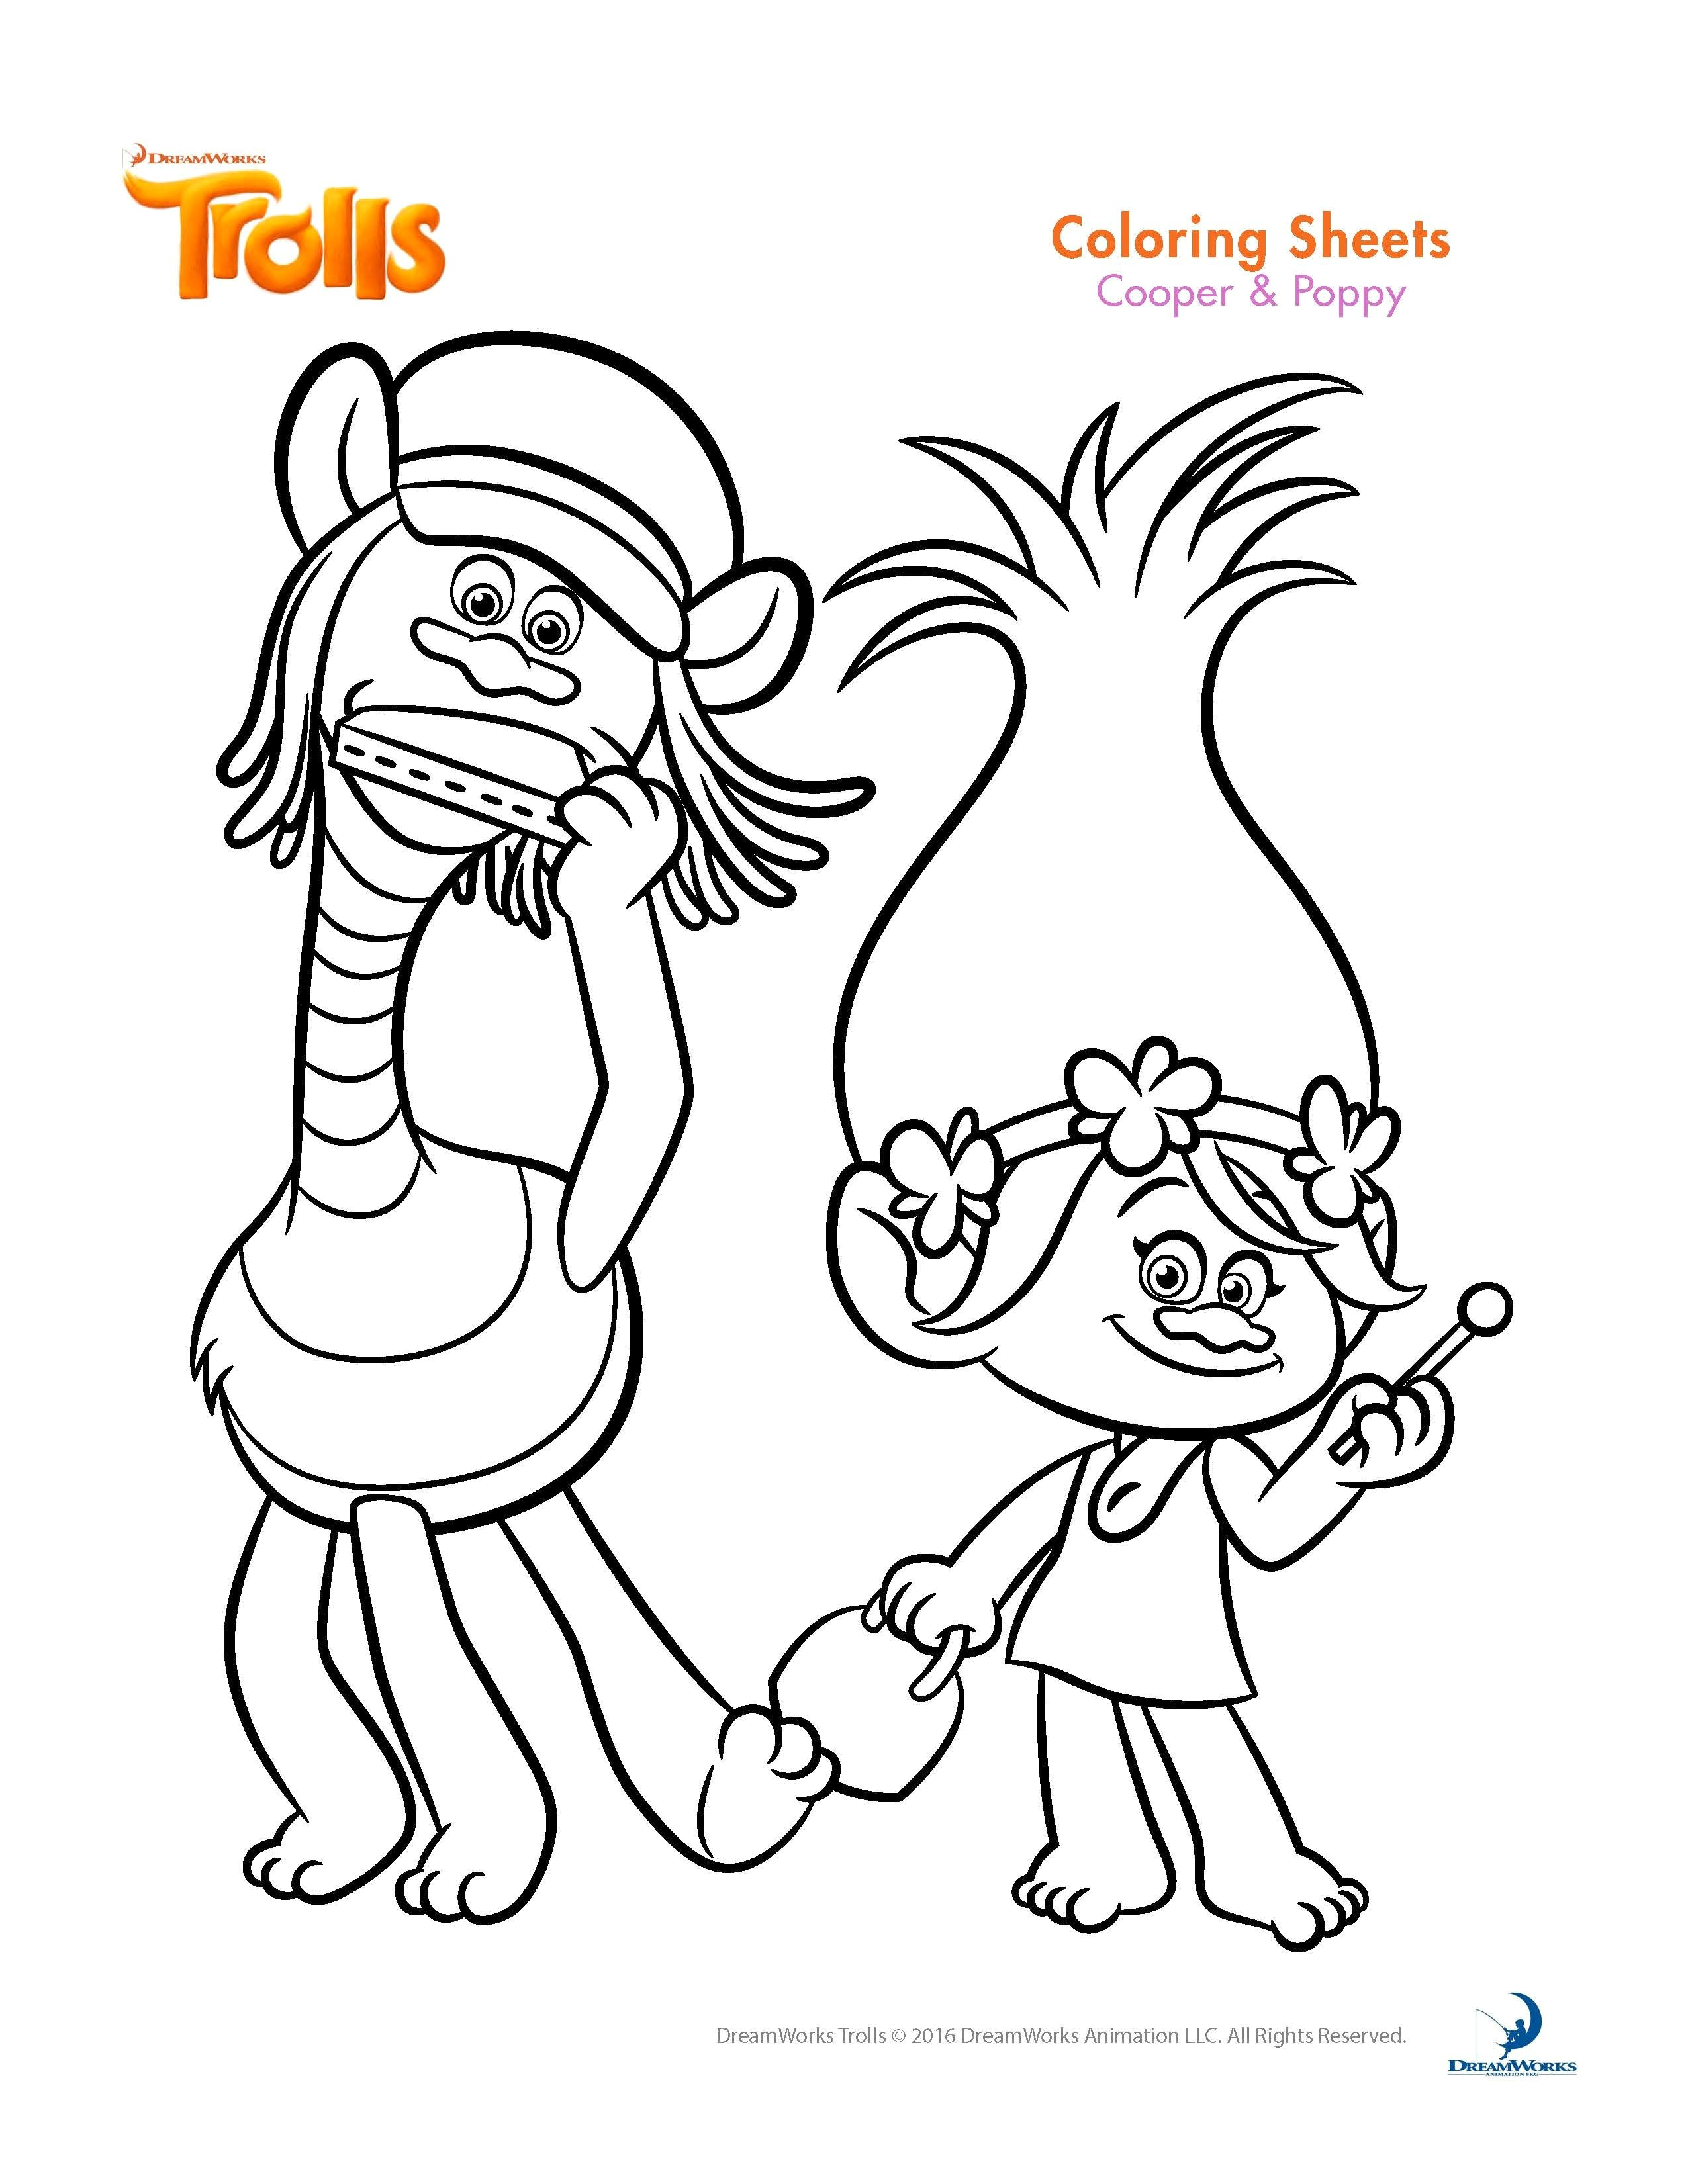 Free Trolls Coloring Pages Trolls Coloring Sheets And Printable